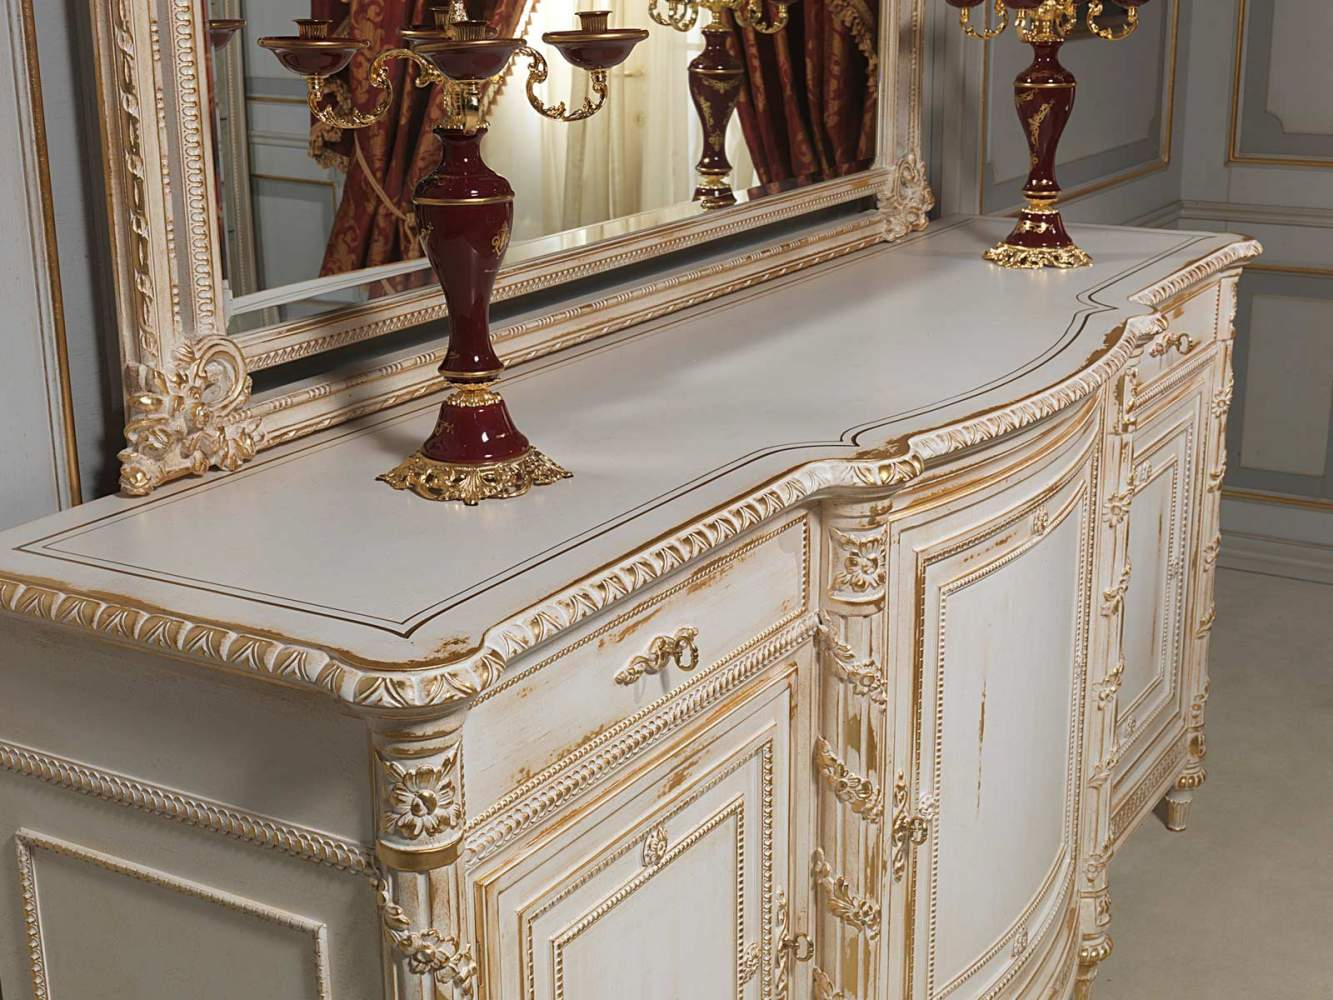 Carved sideboard in Louis XVI